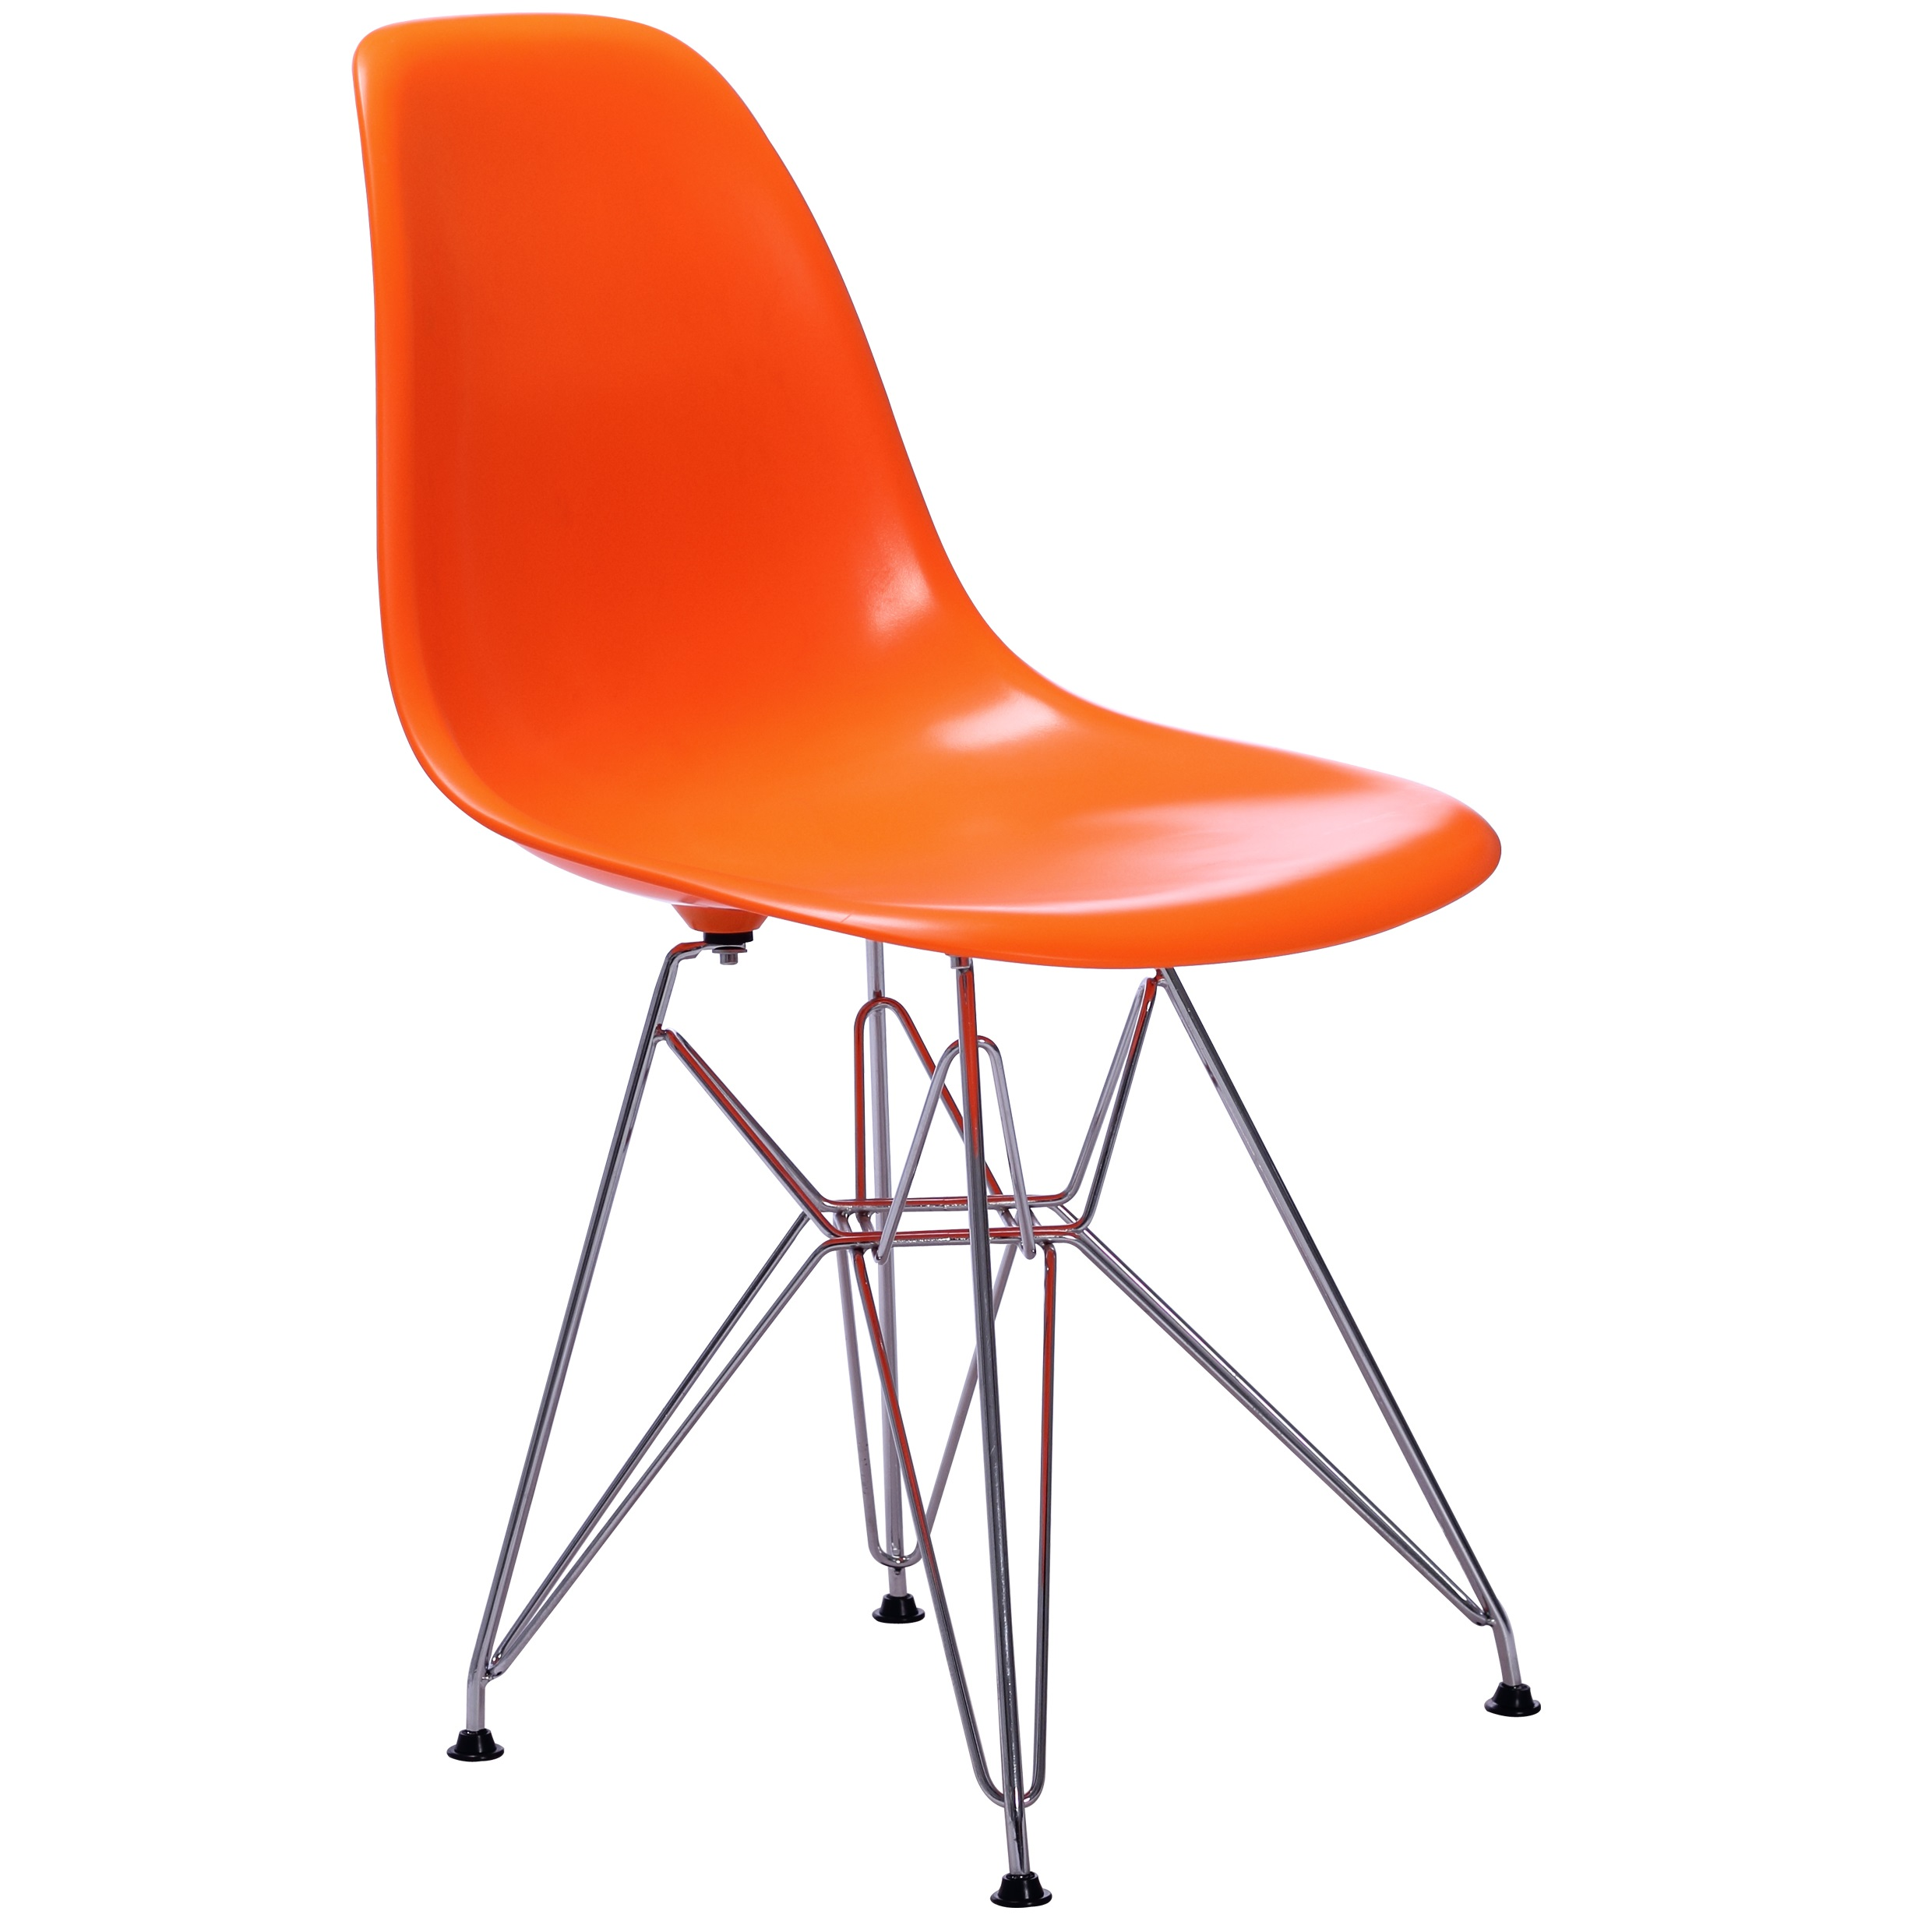 fake eames chair single for bedroom replica dsr place furniture